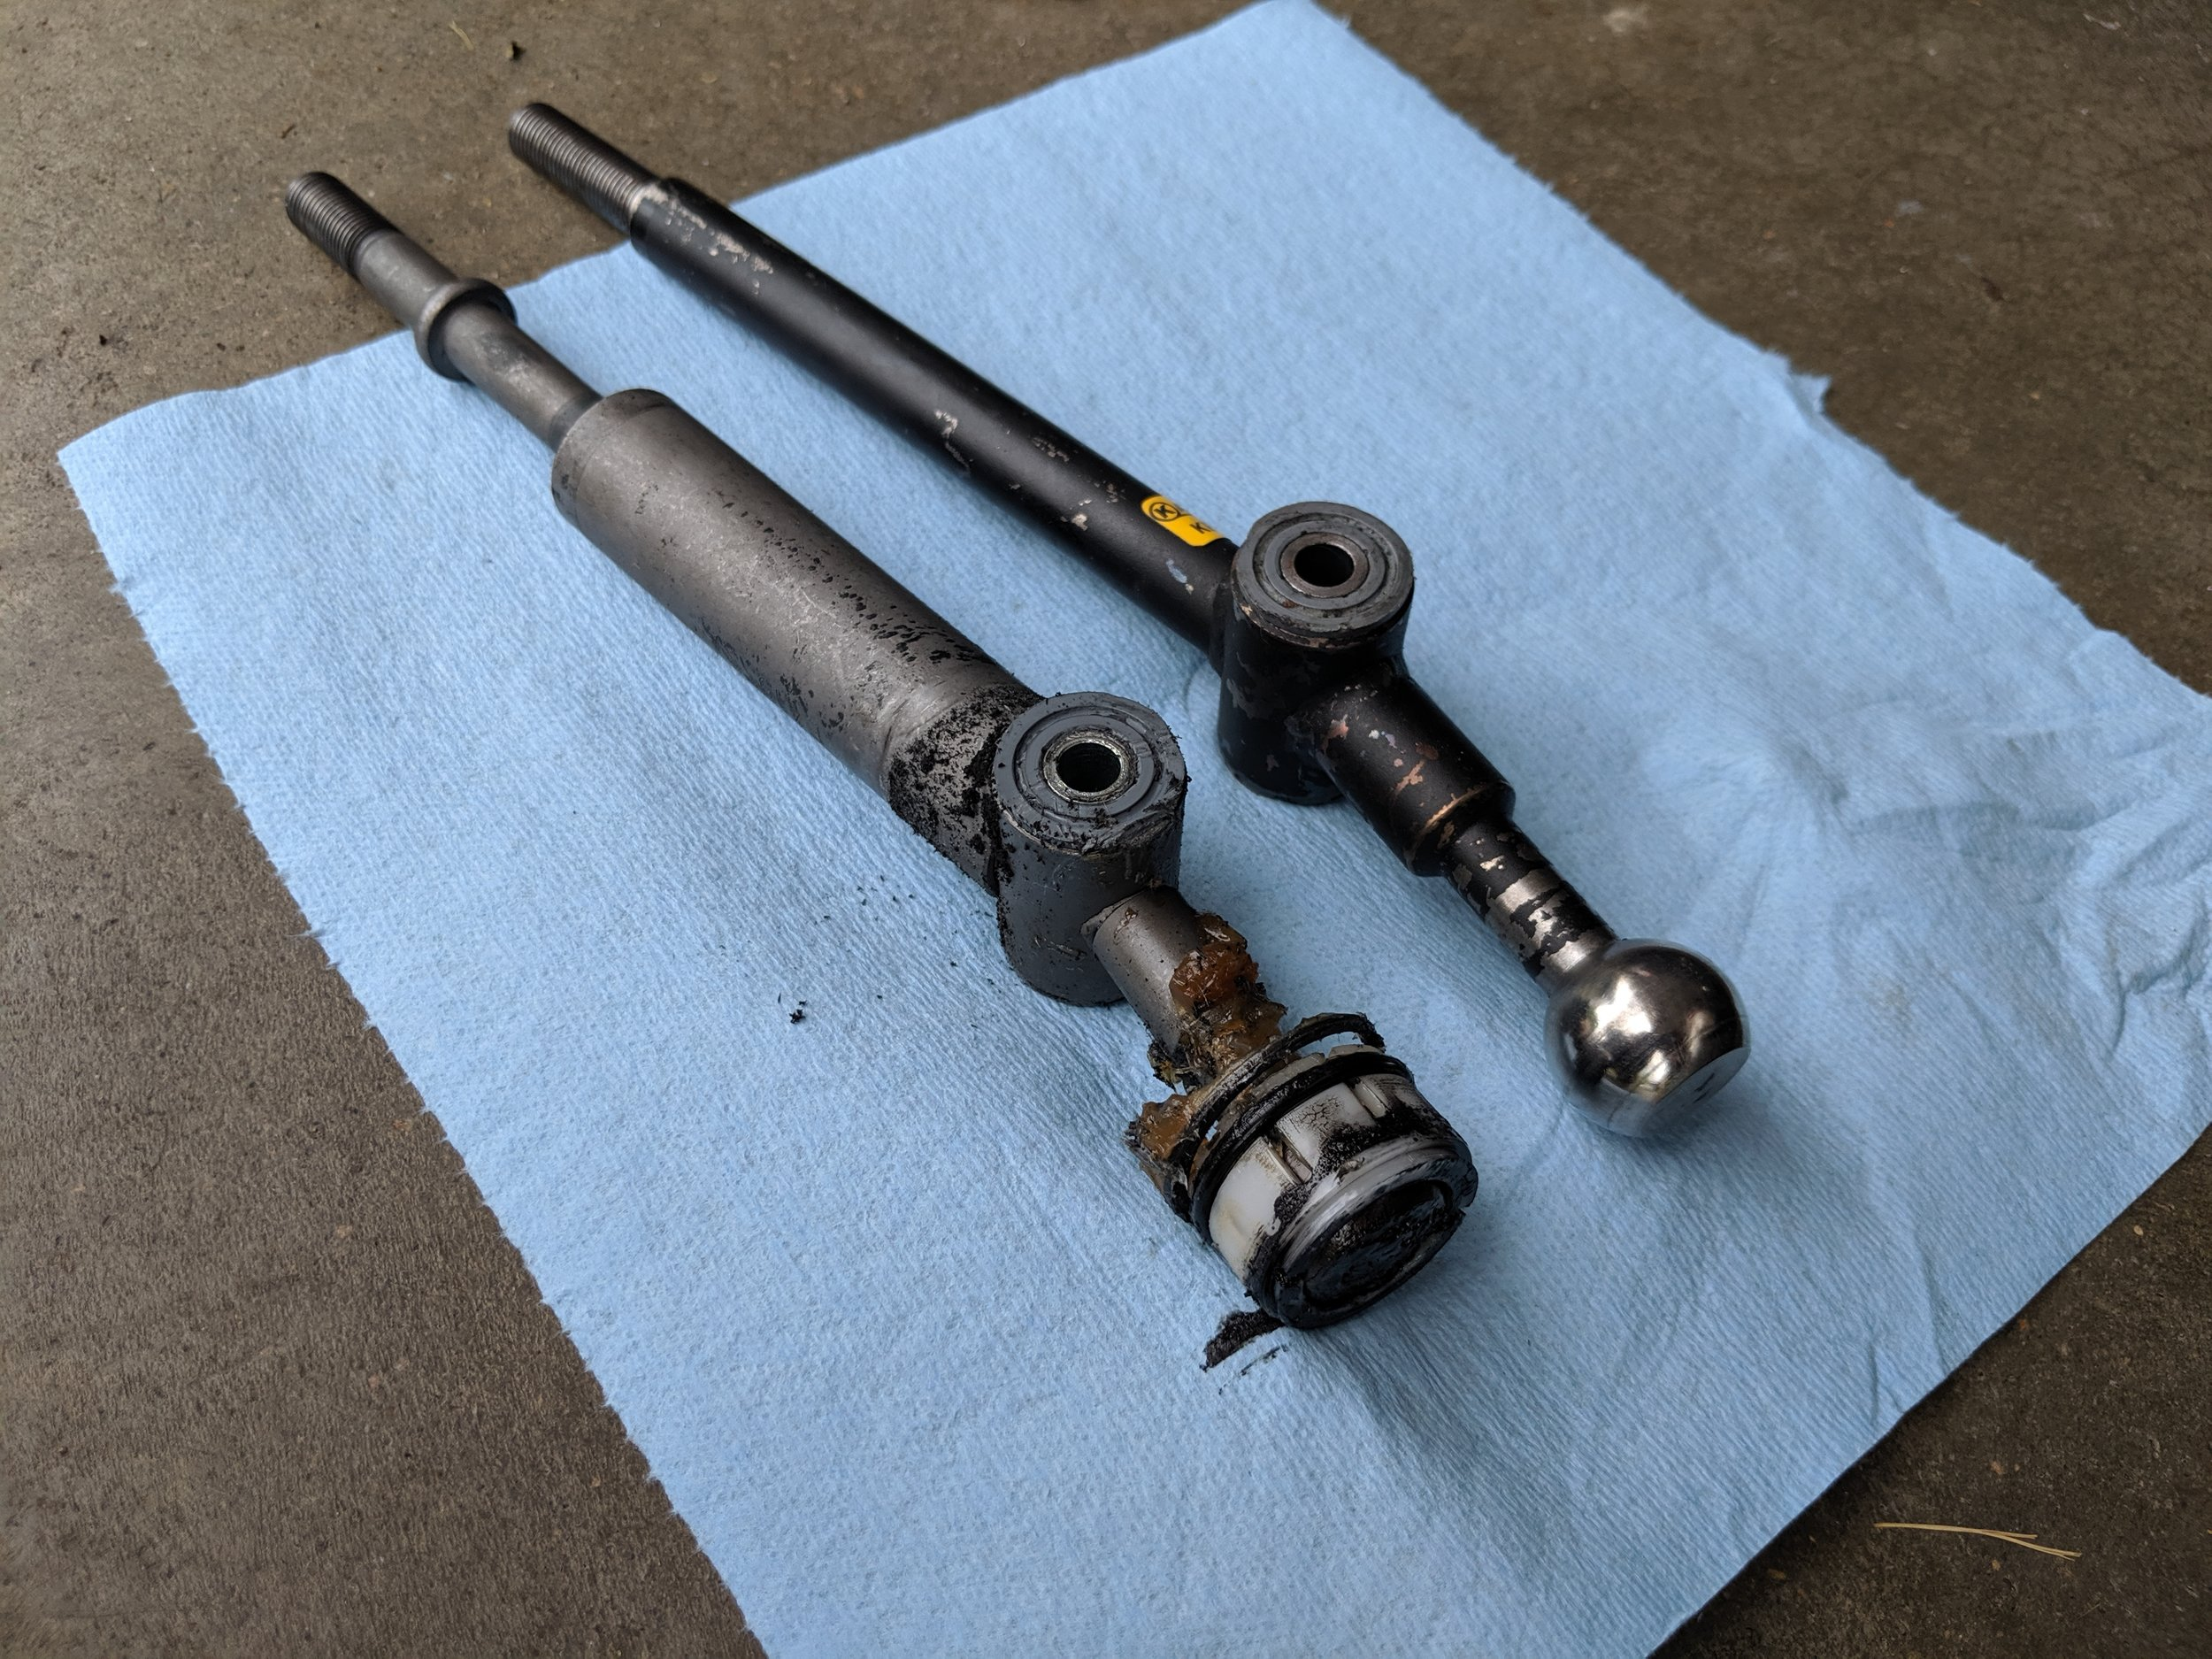 Oem shifter on the left Kartboy on the left. We will need to take off the plastic clip and transfer it ovcer